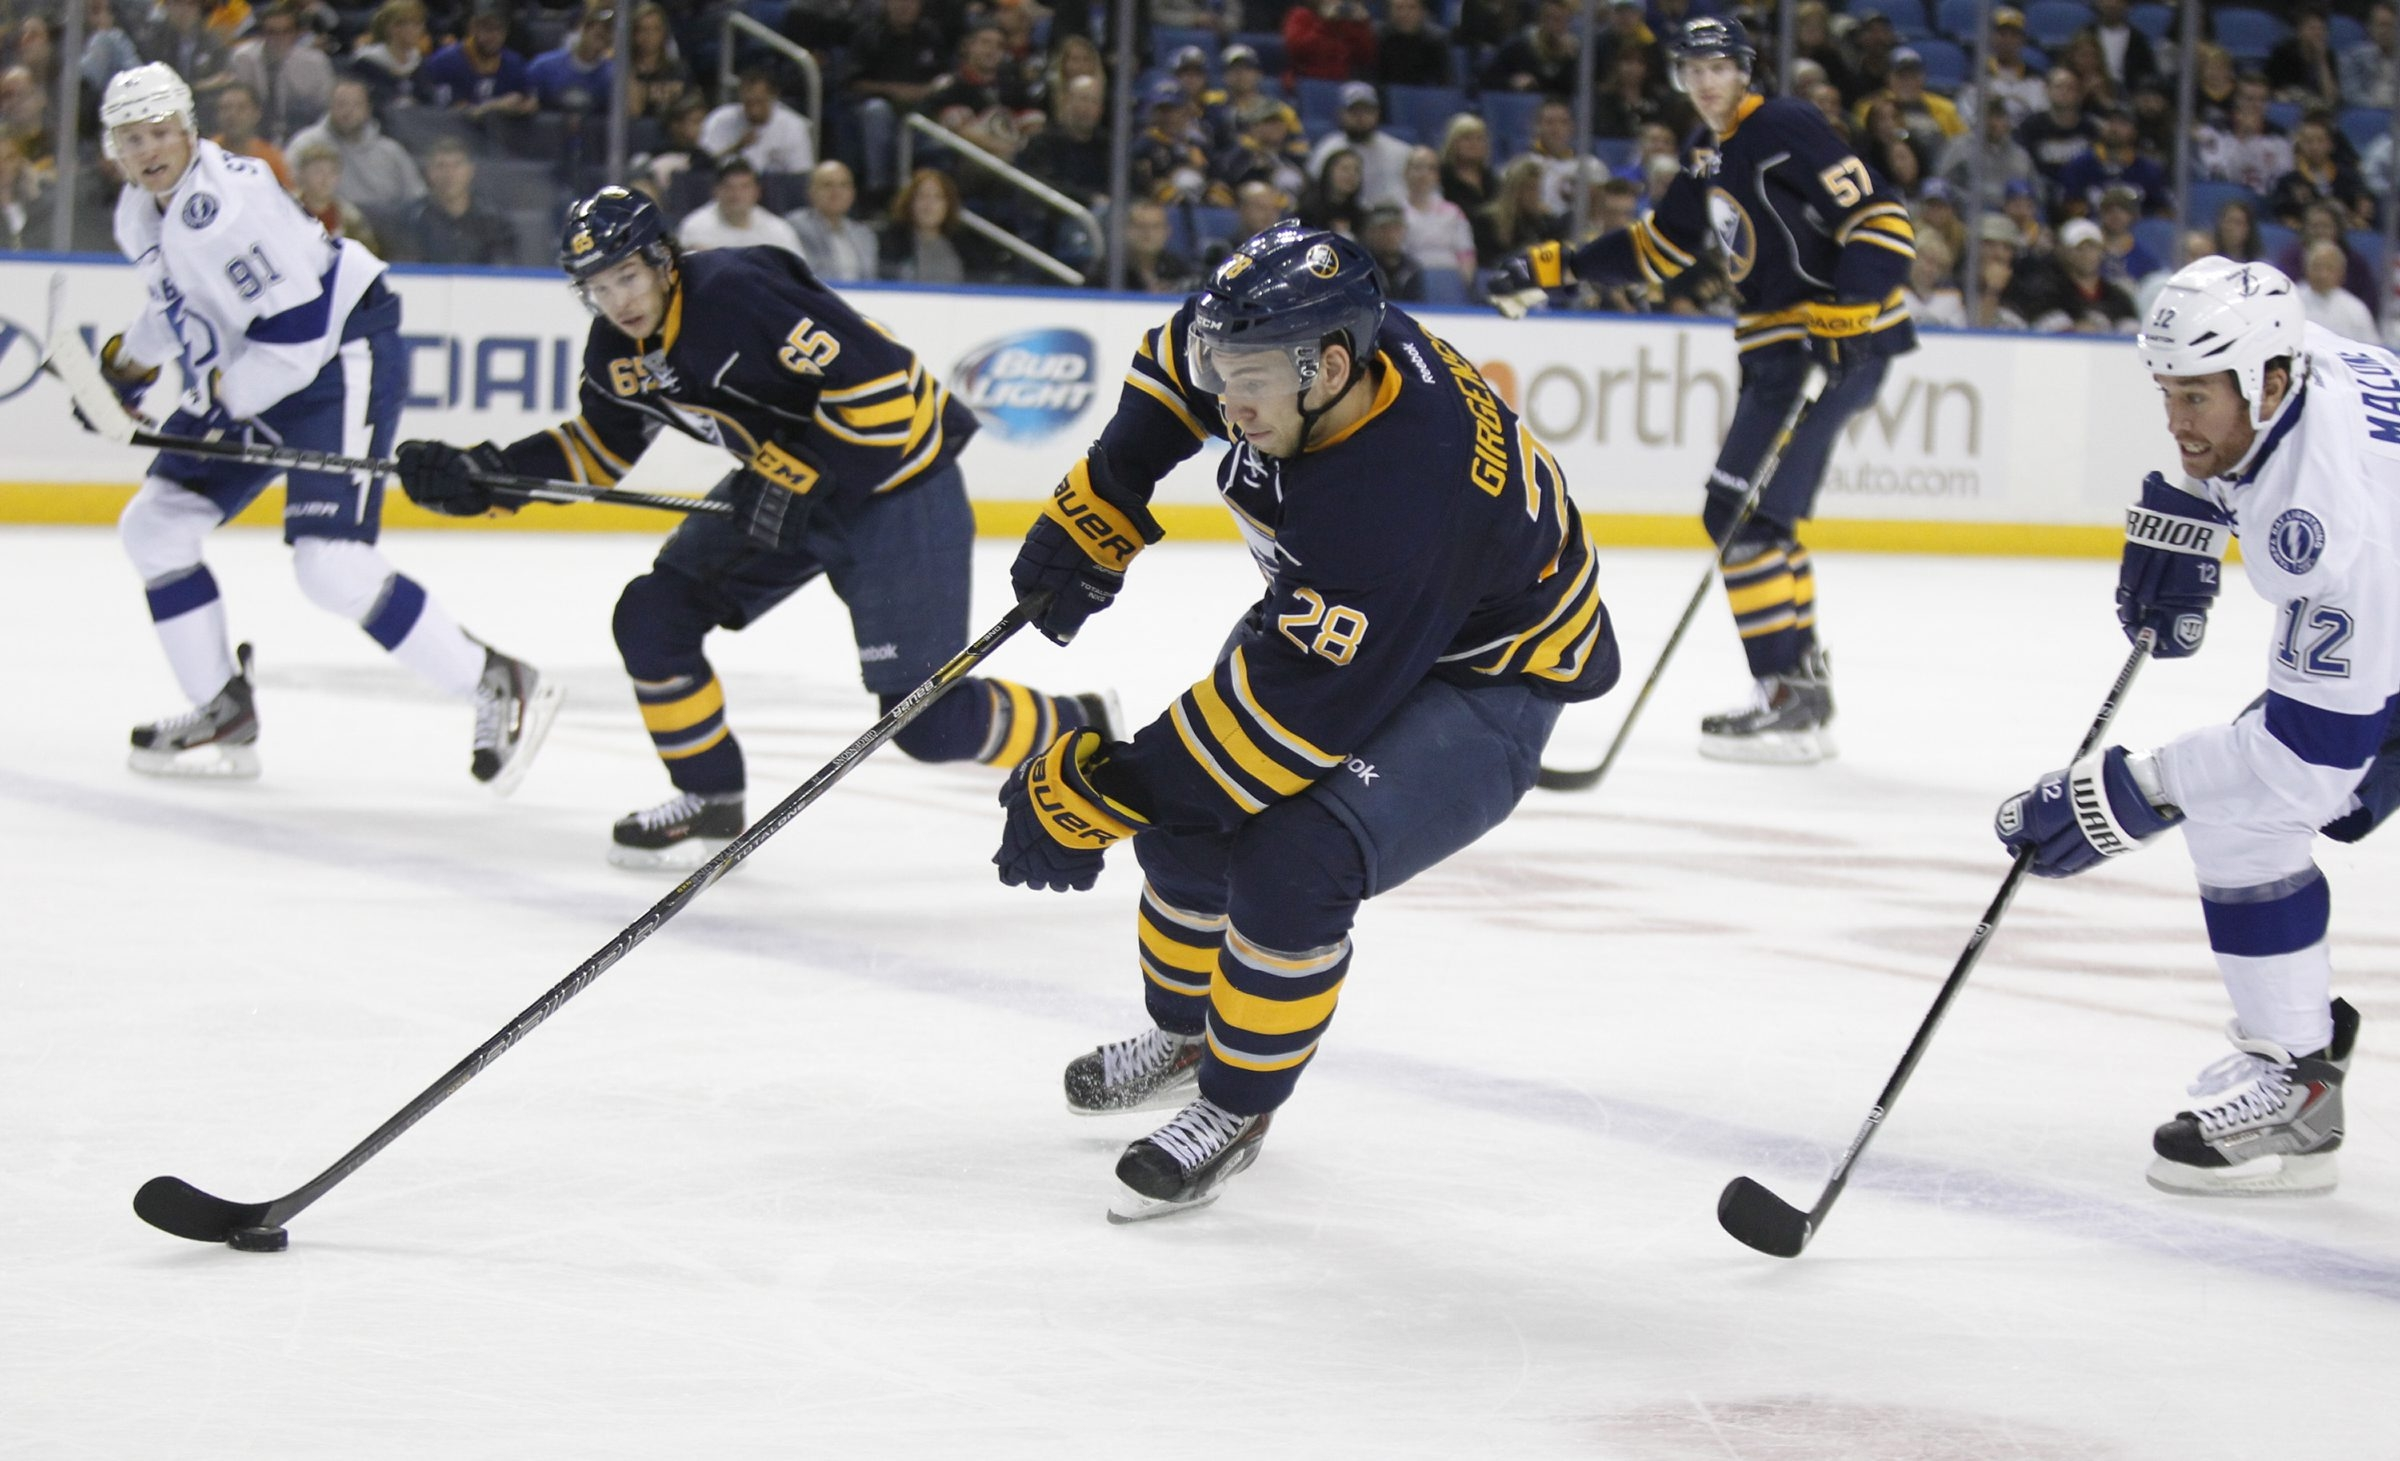 Zemgus Girgensons, returning after an 11-game absence, was a big presence against Tampa Bay on Saturday night.